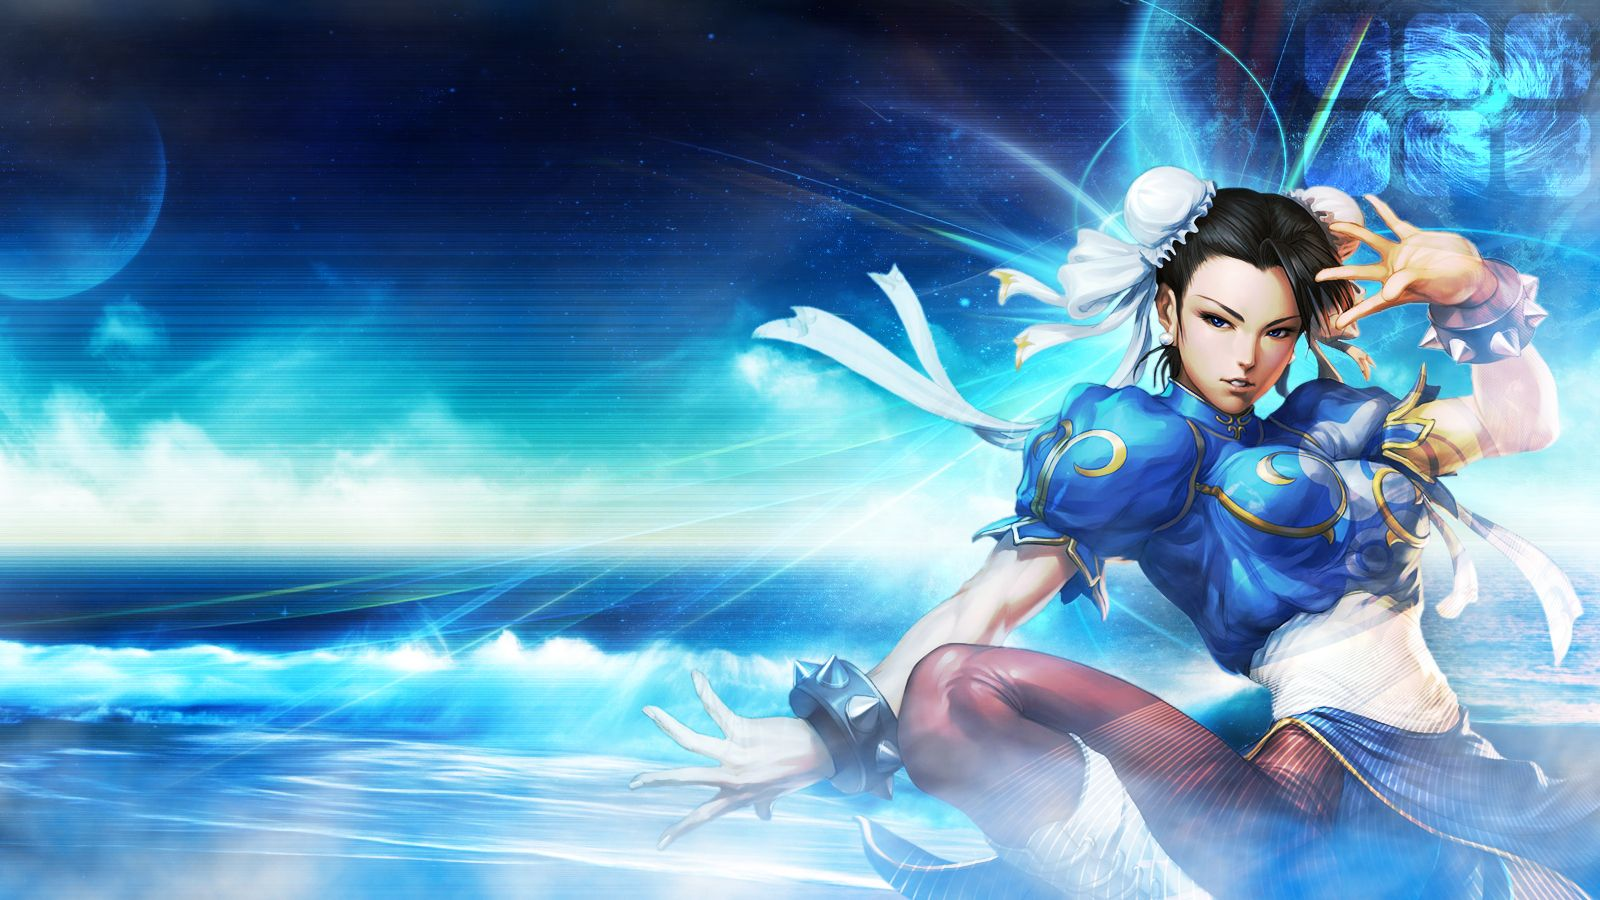 Street Fighter Chun Li Wallpapers High Definition Click